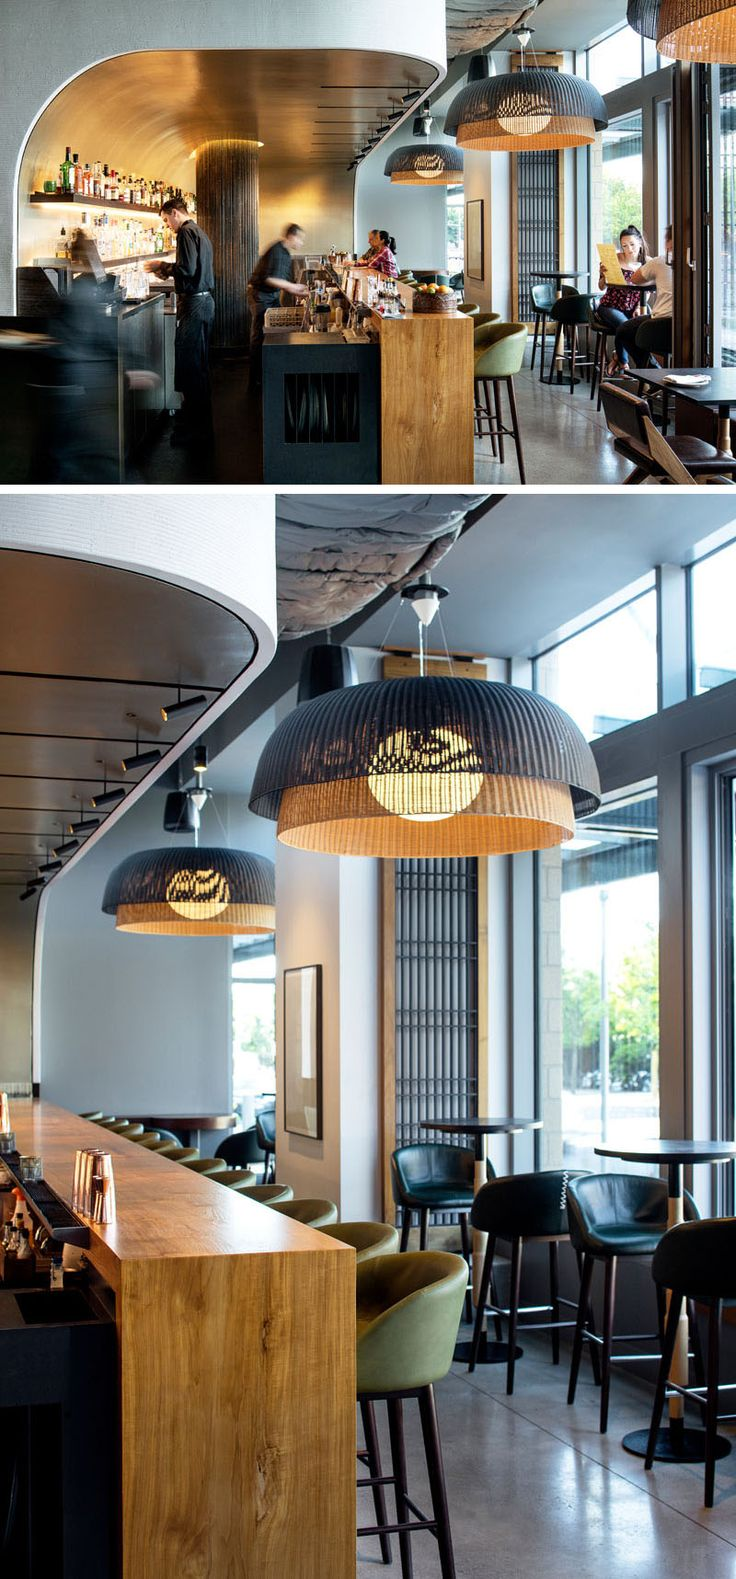 SkB Architects Have Designed The Interior Of A New Southeast Asian Restaurant Near Seattle, Washington